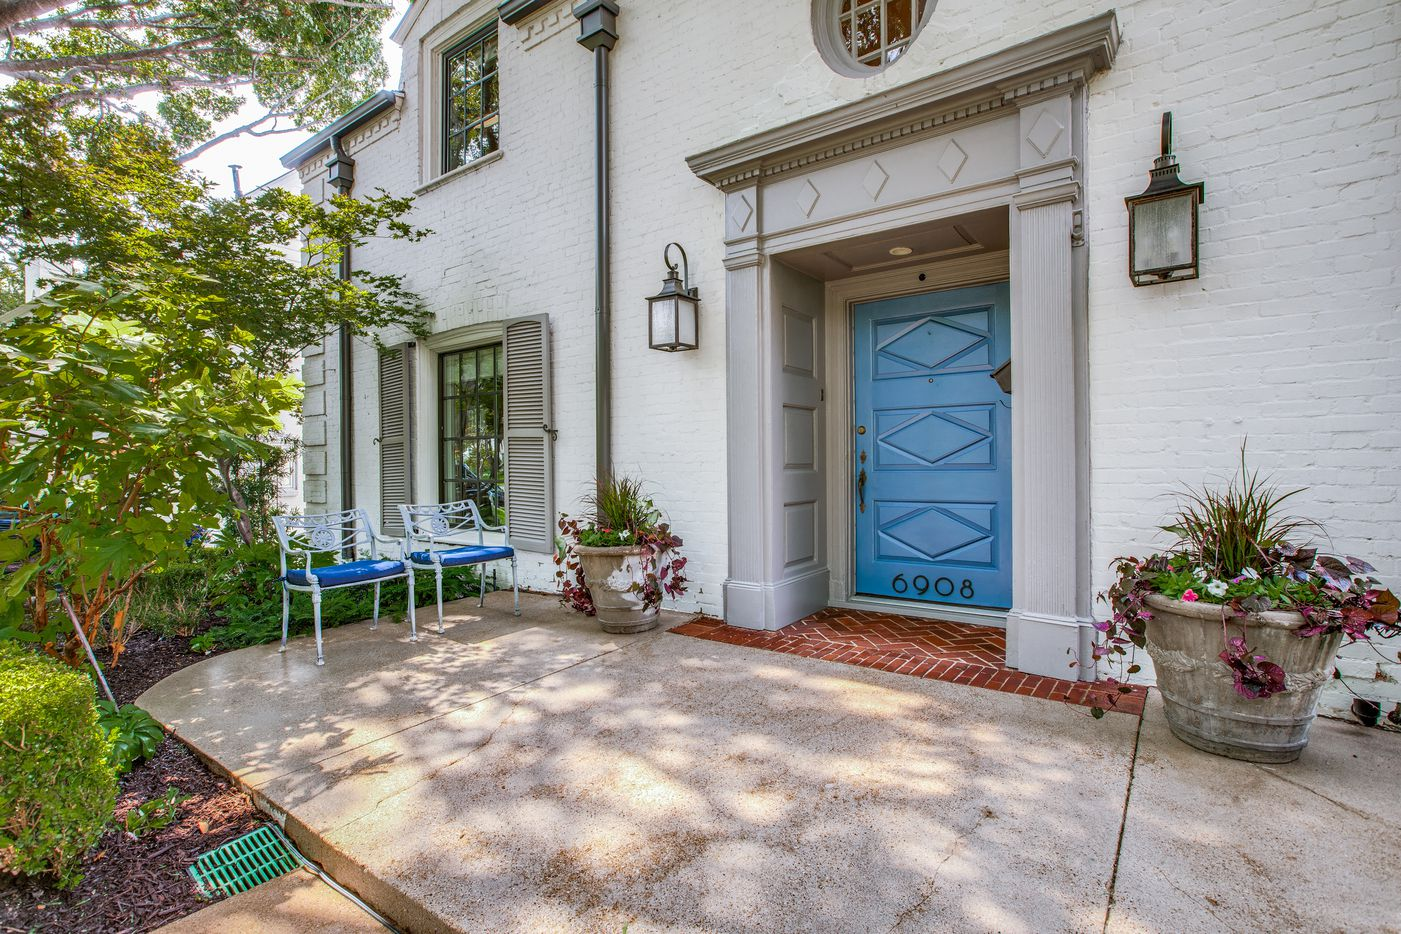 Take a look at the home at 6908 Lakeshore Drive in Dallas.